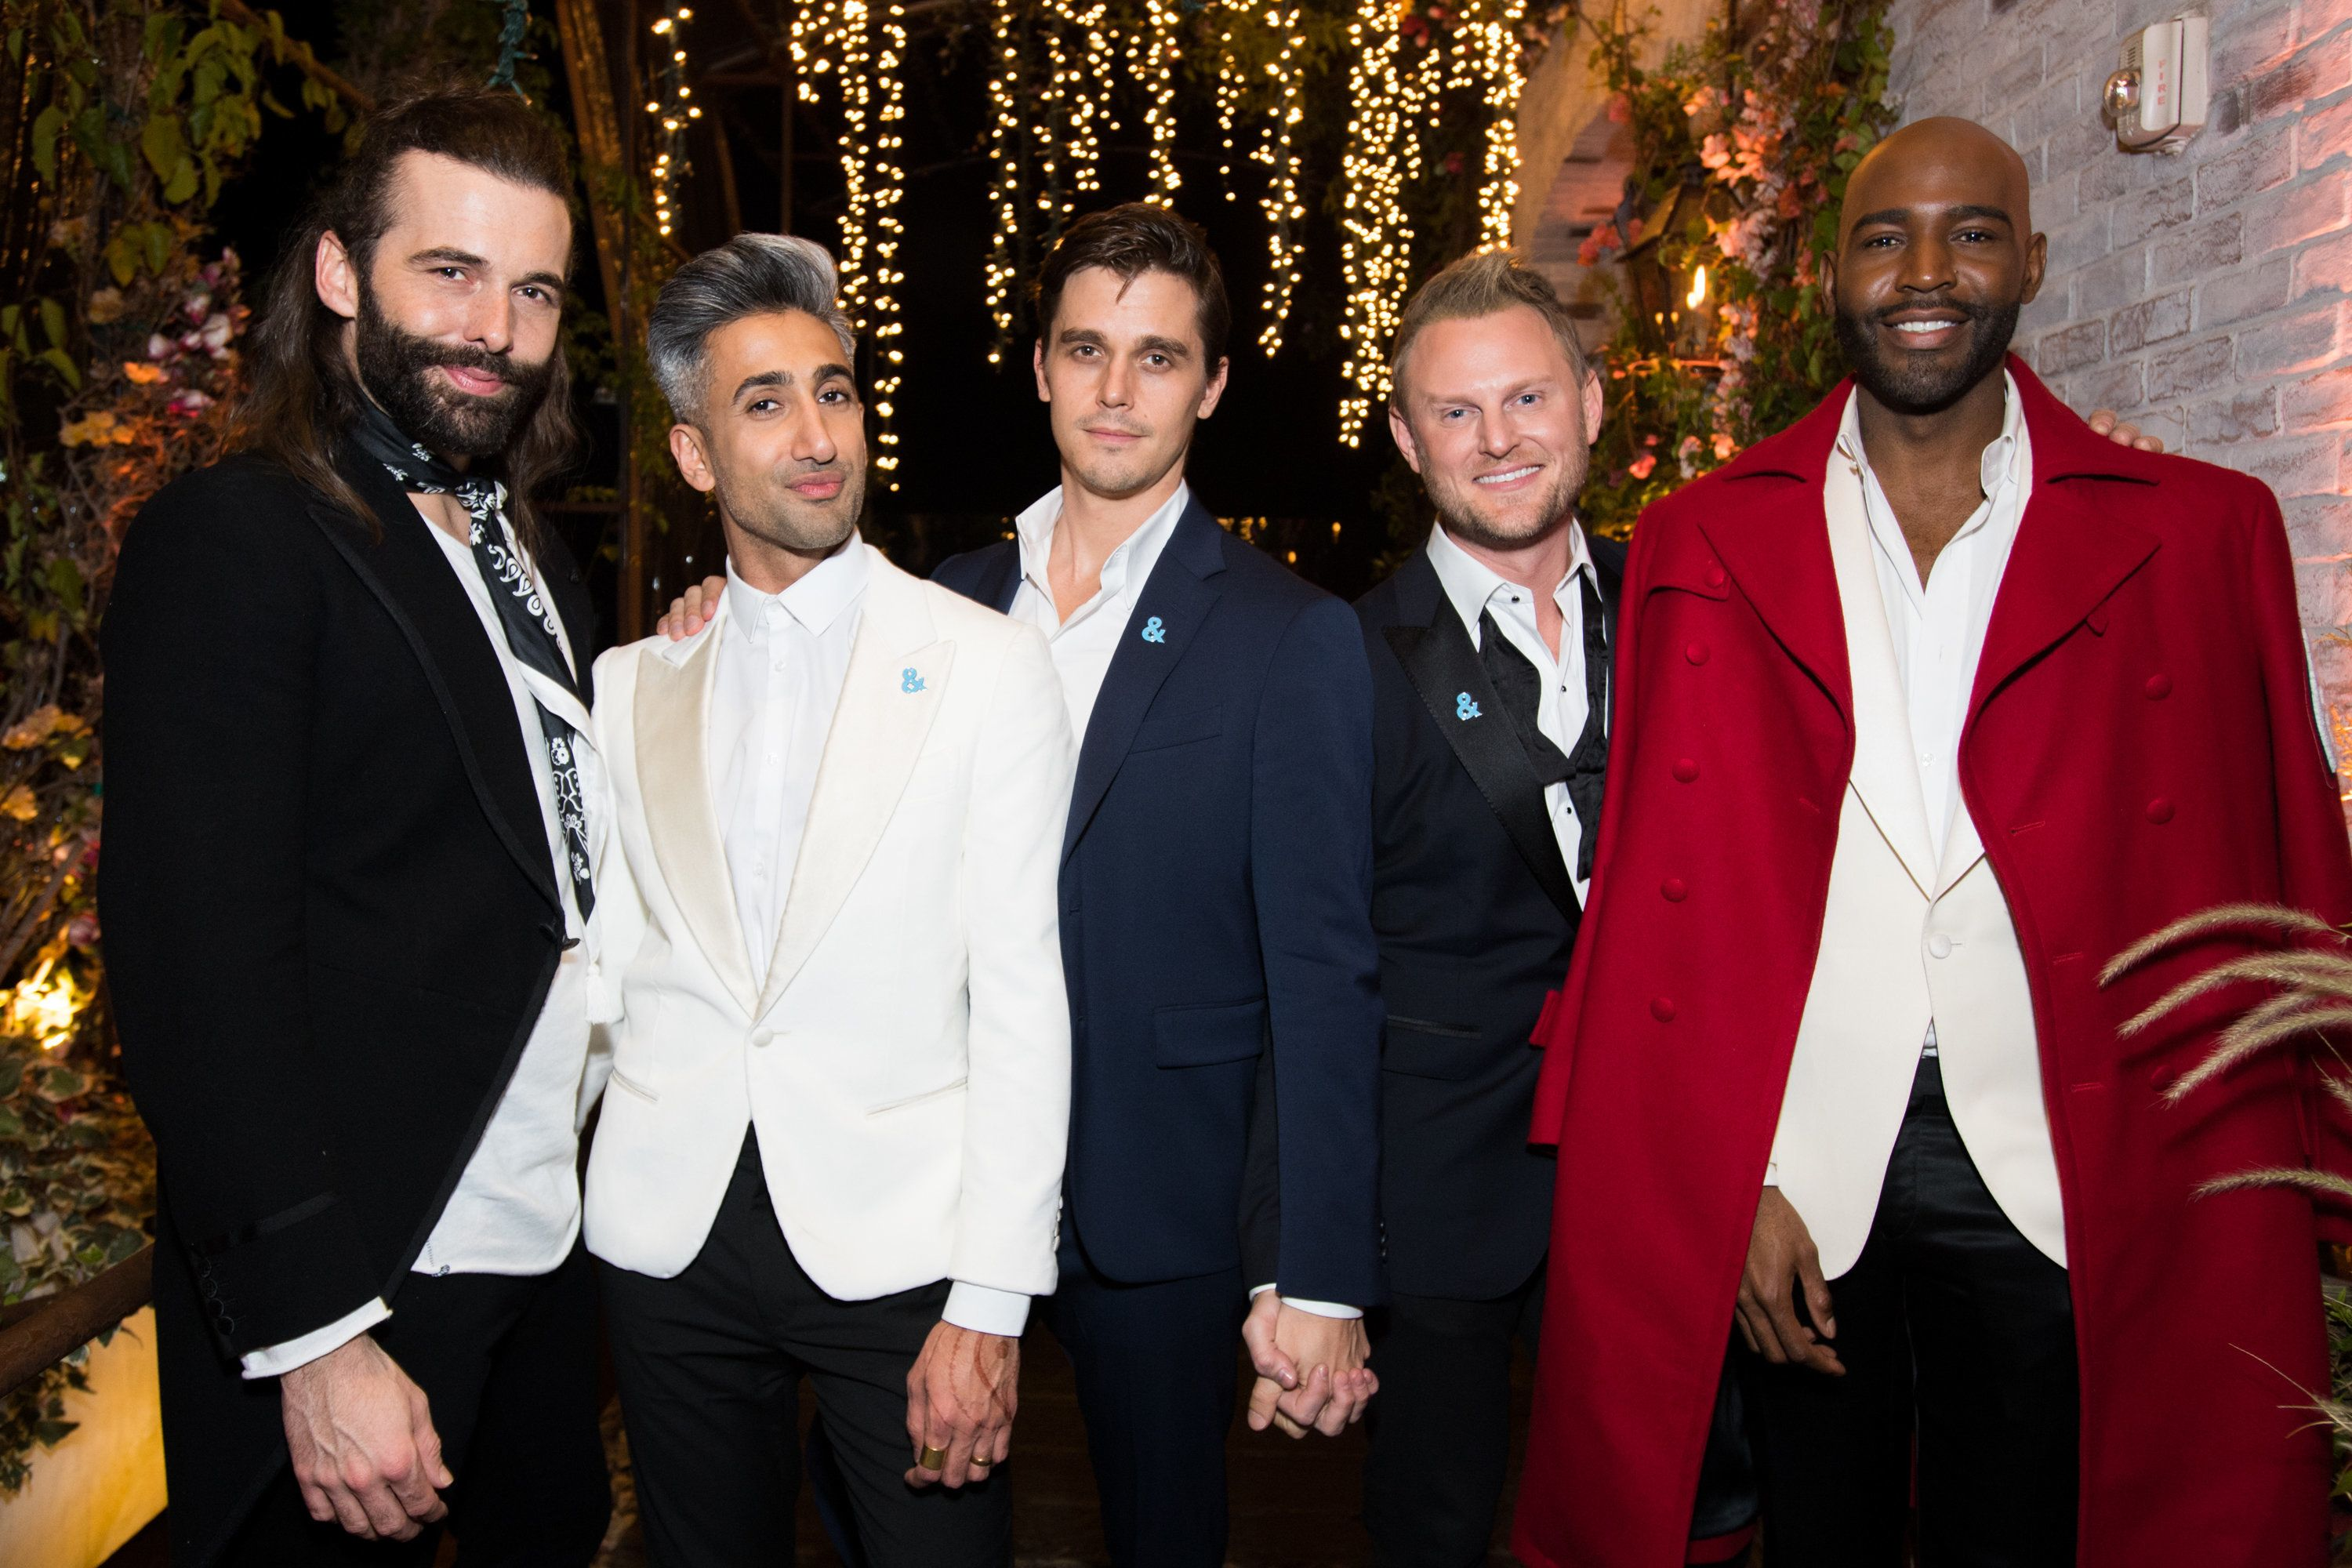 8 Of The Greatest Style Tips We Learnt From Watching 'Queer Eye'